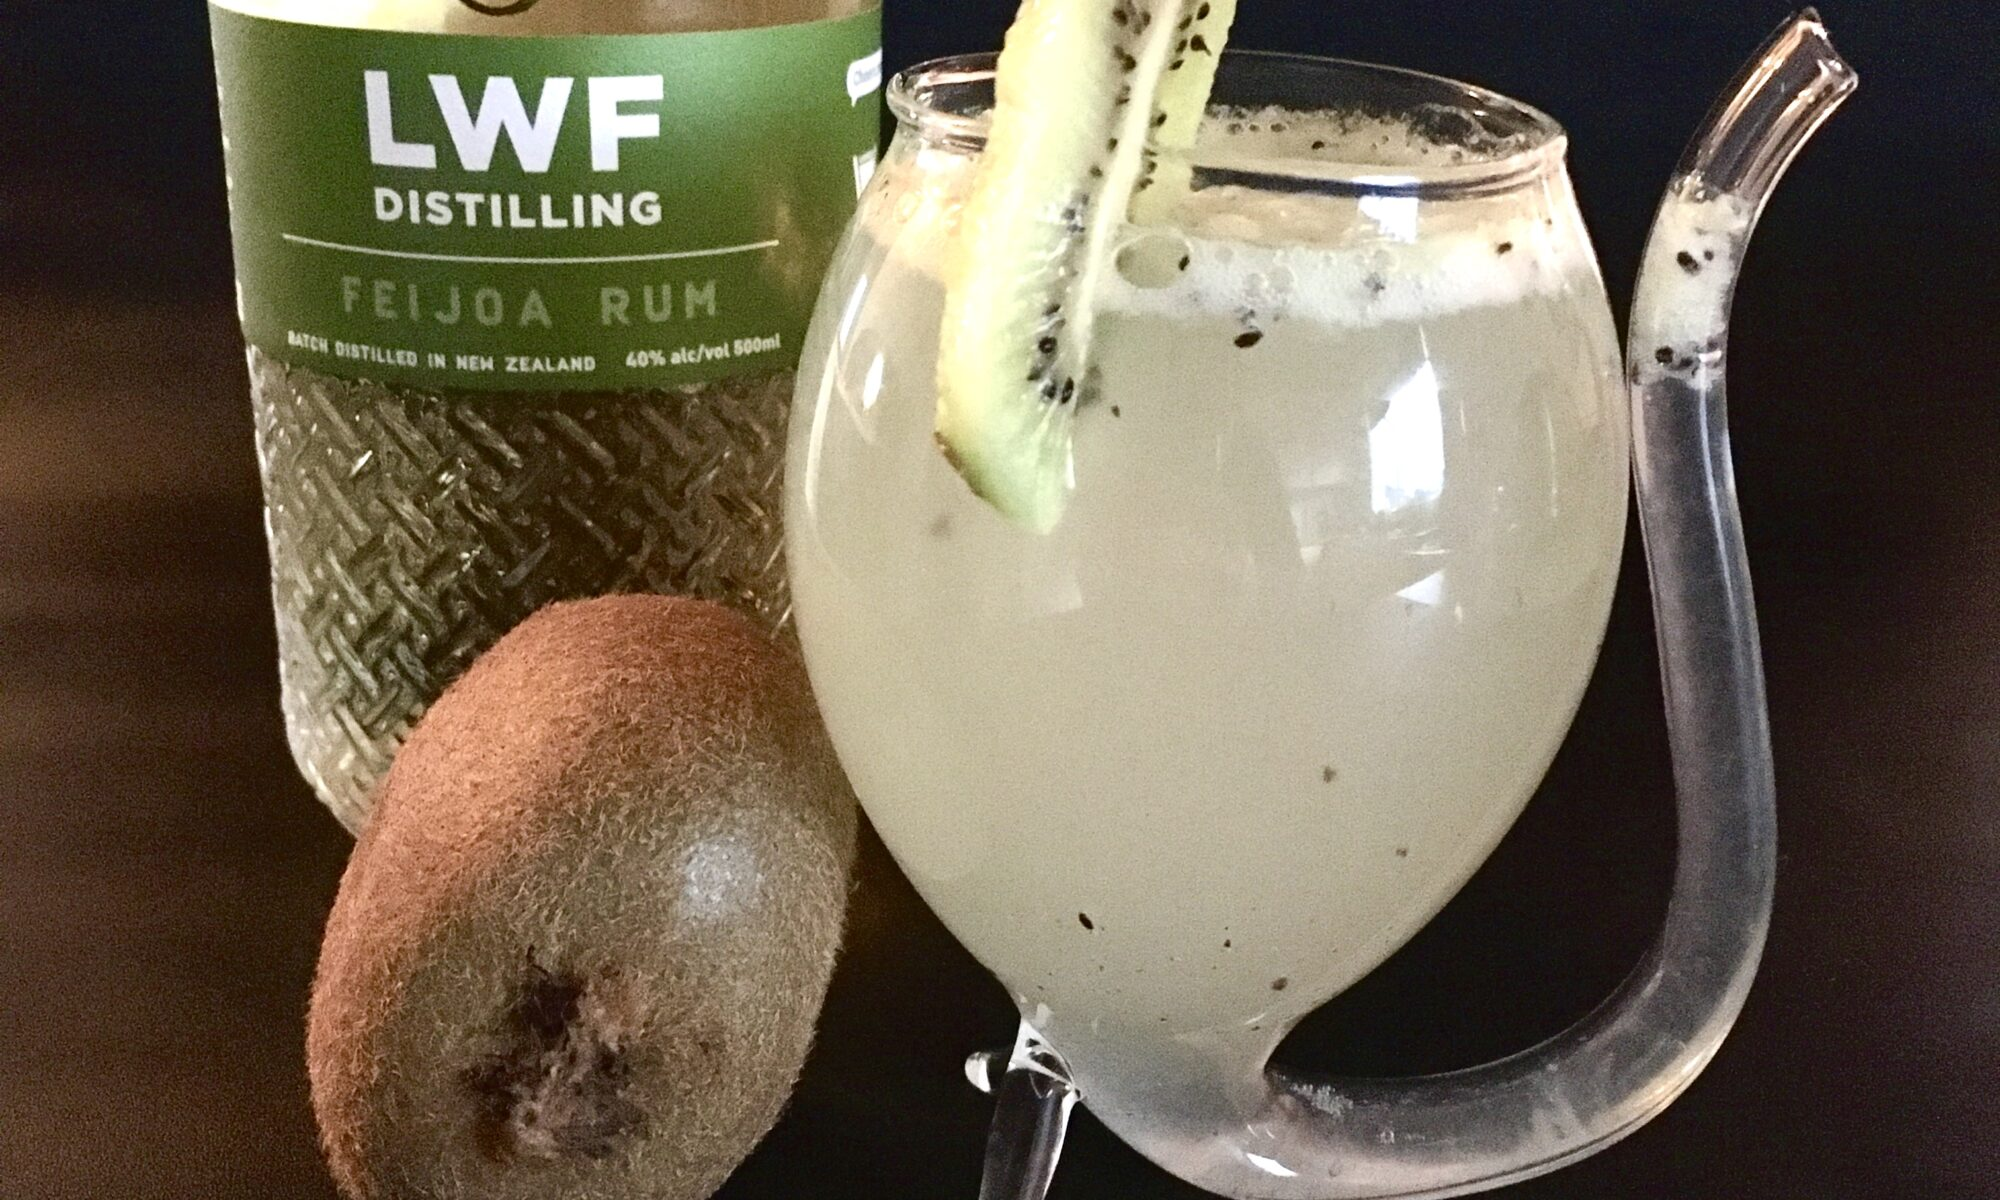 LWF Distilling Feijoa Rum Cocktail